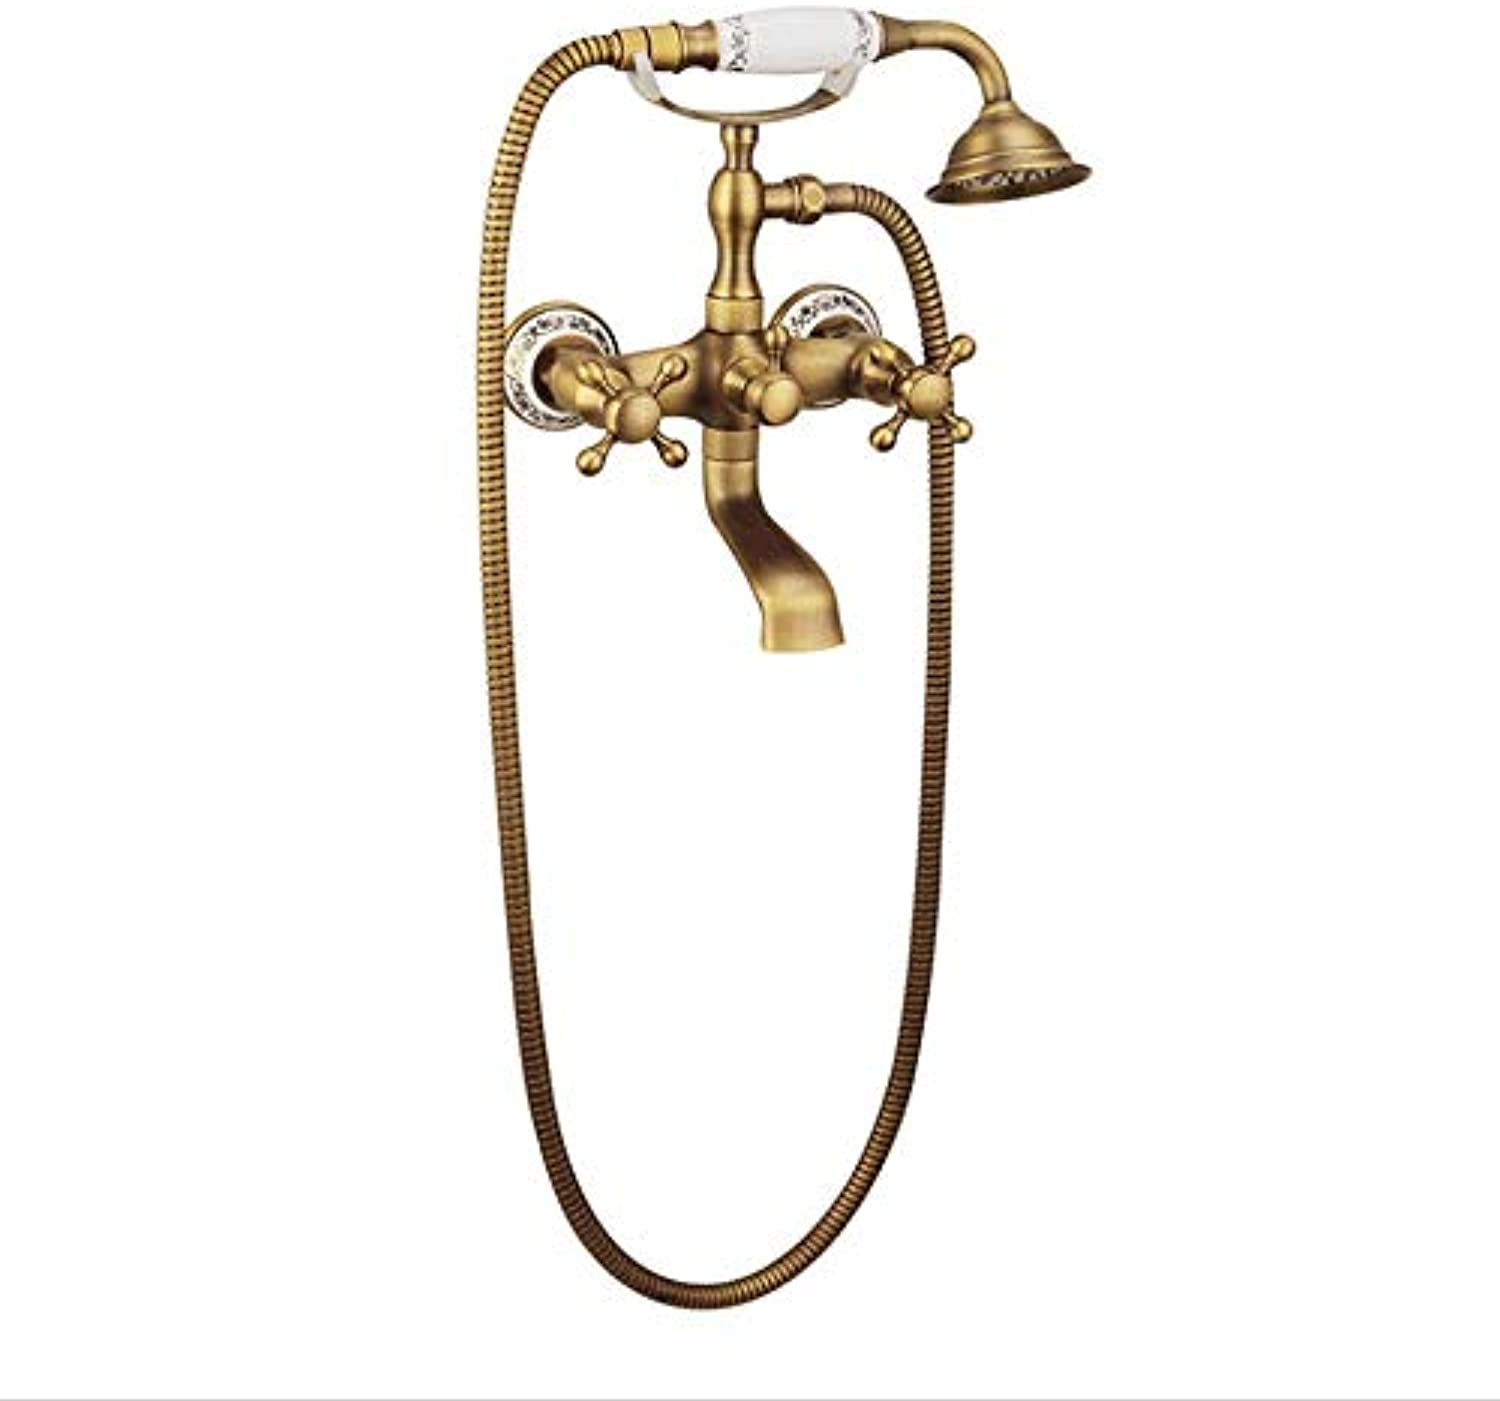 Bathroom Shower System, All Copper Retro Shower, Handheld Microphone Model, All Copper Knob Switch, bluee And White Porcelain Handle, A Variety Of Styles Optional, European Style,ceramichandle